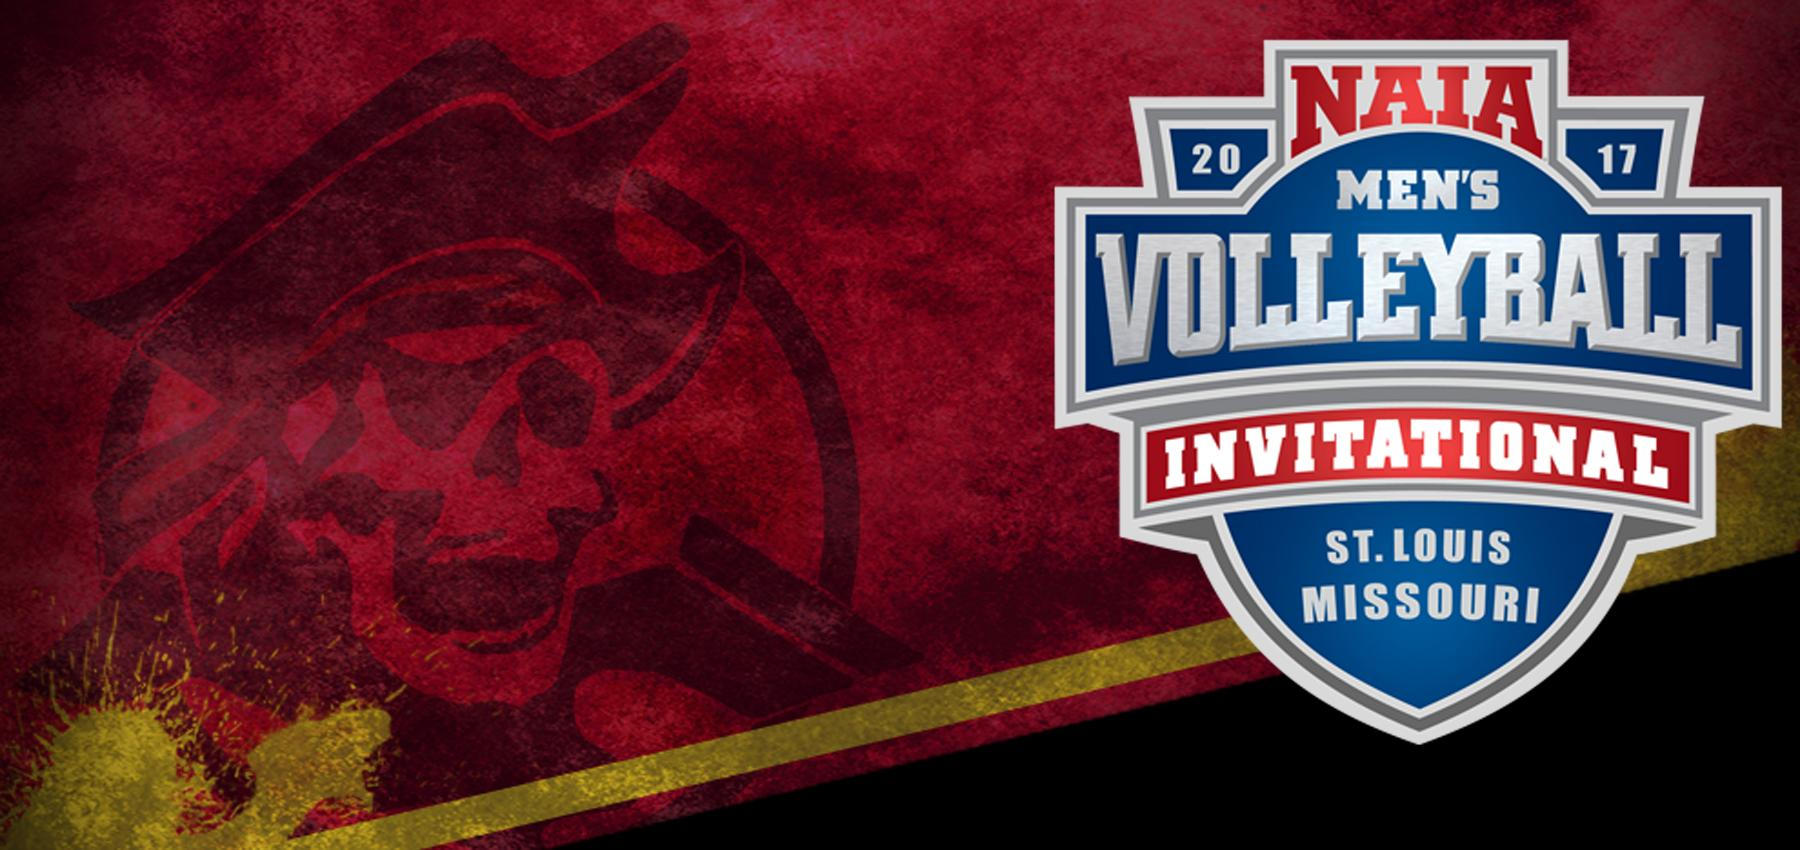 TOURNAMENT CENTRAL: PARK IN THE NAIA MEN'S VOLLEYBALL